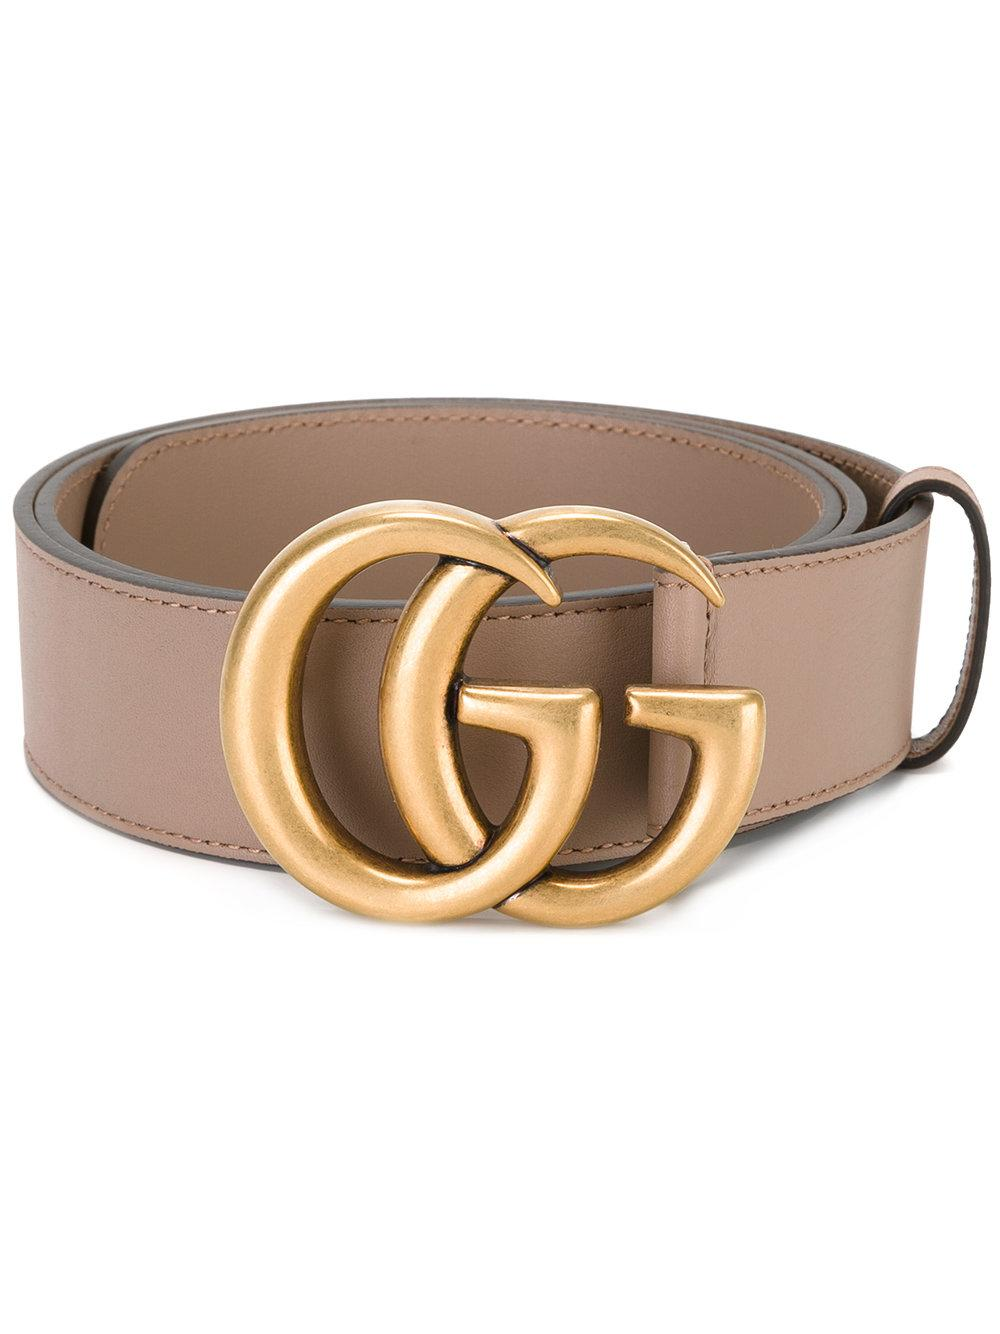 58854570e Gucci Double G Buckle Belt in Natural - Lyst